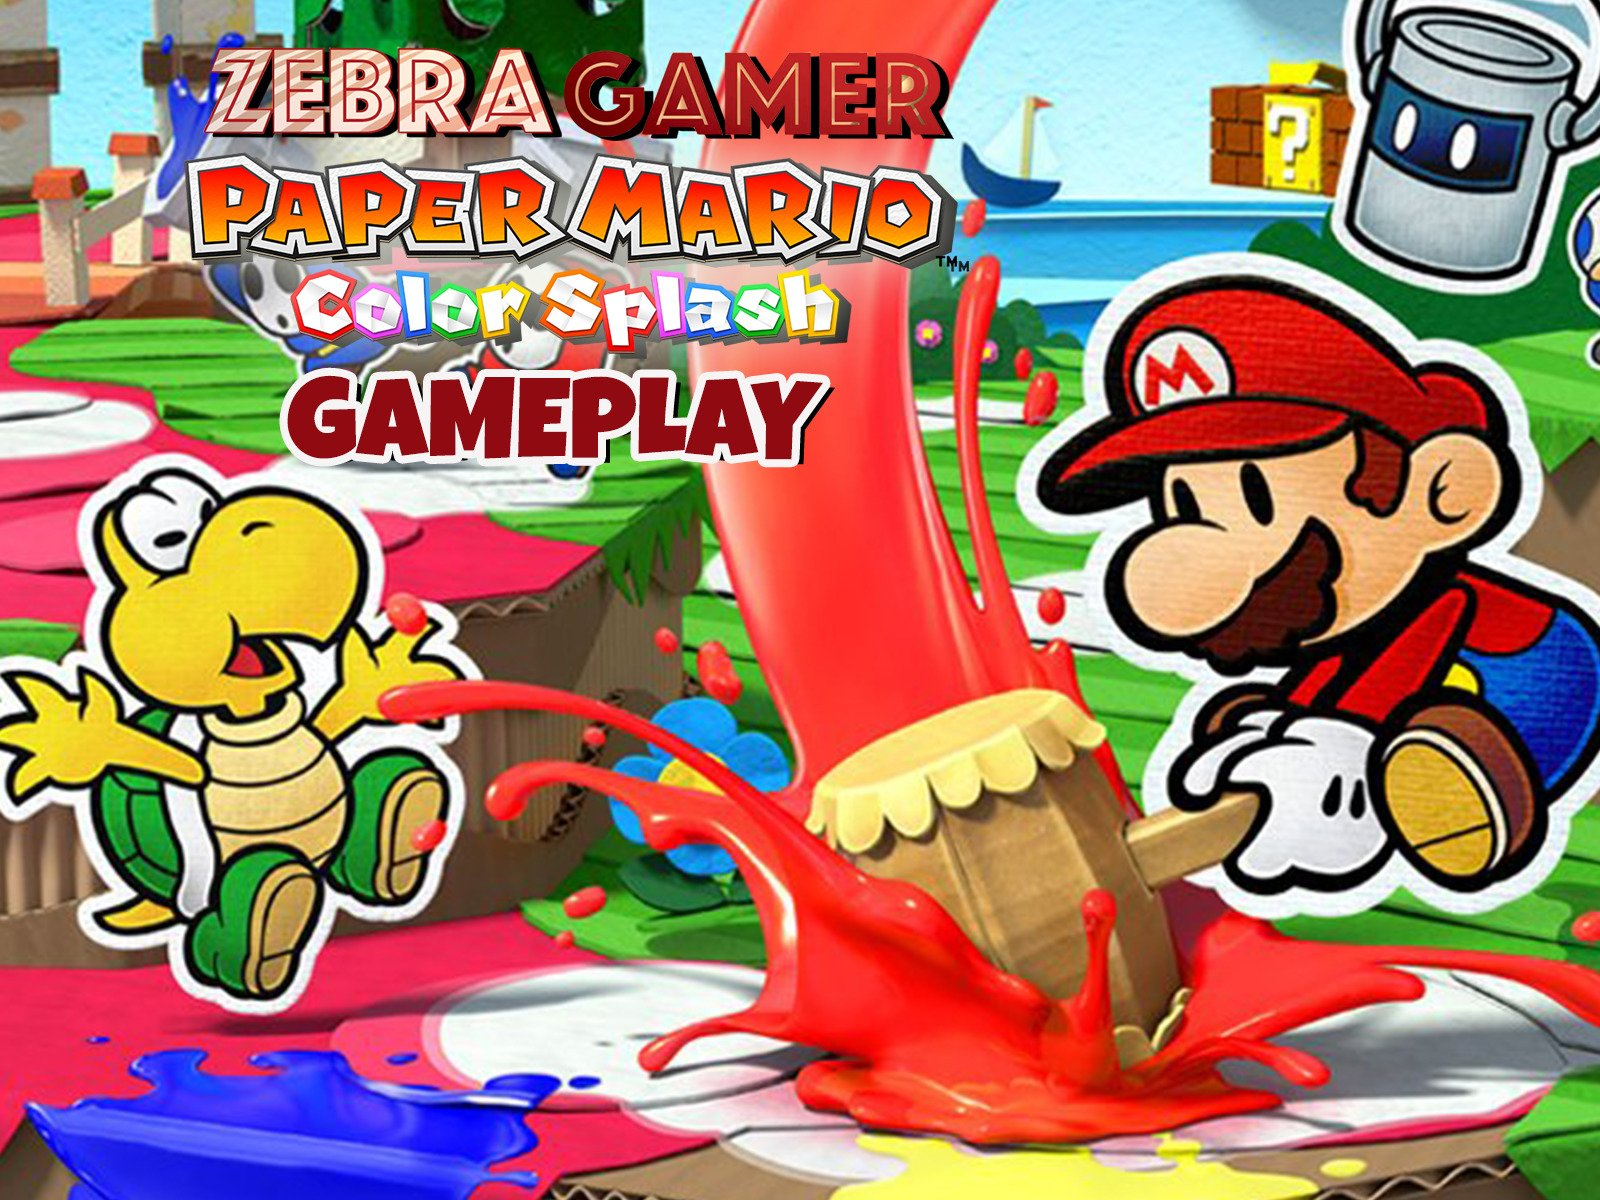 Paper Mario Color Splash Gameplay - Season 1